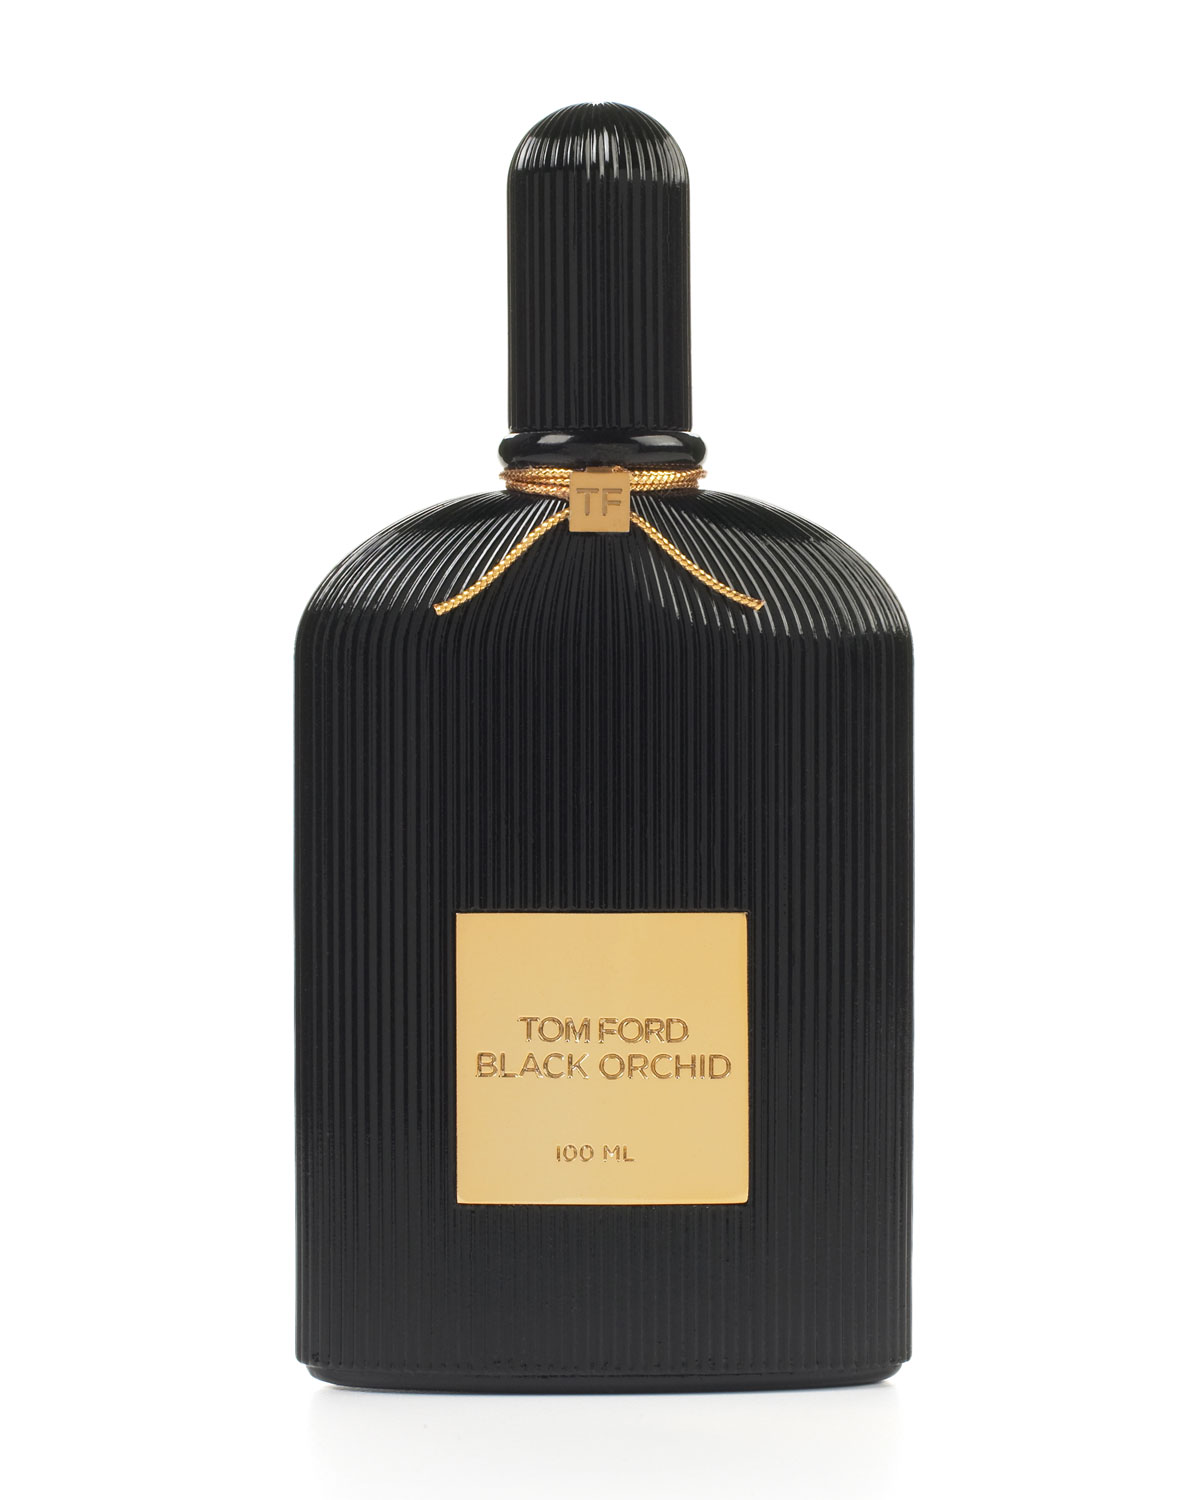 Black Orchid, 1.7 oz./ 50 mL